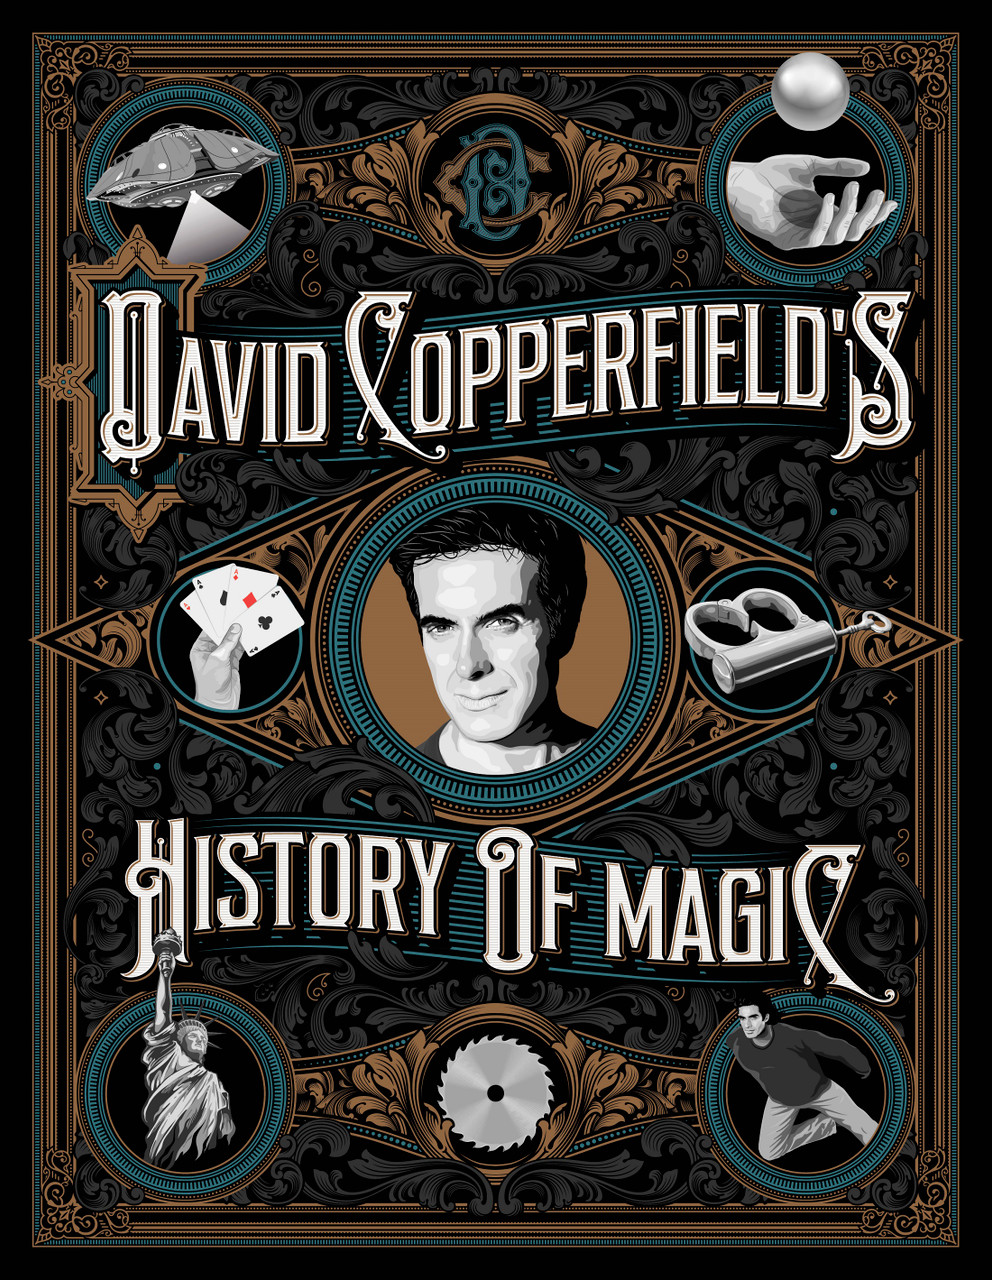 David Copperfield's History of Magic by David Copperfield